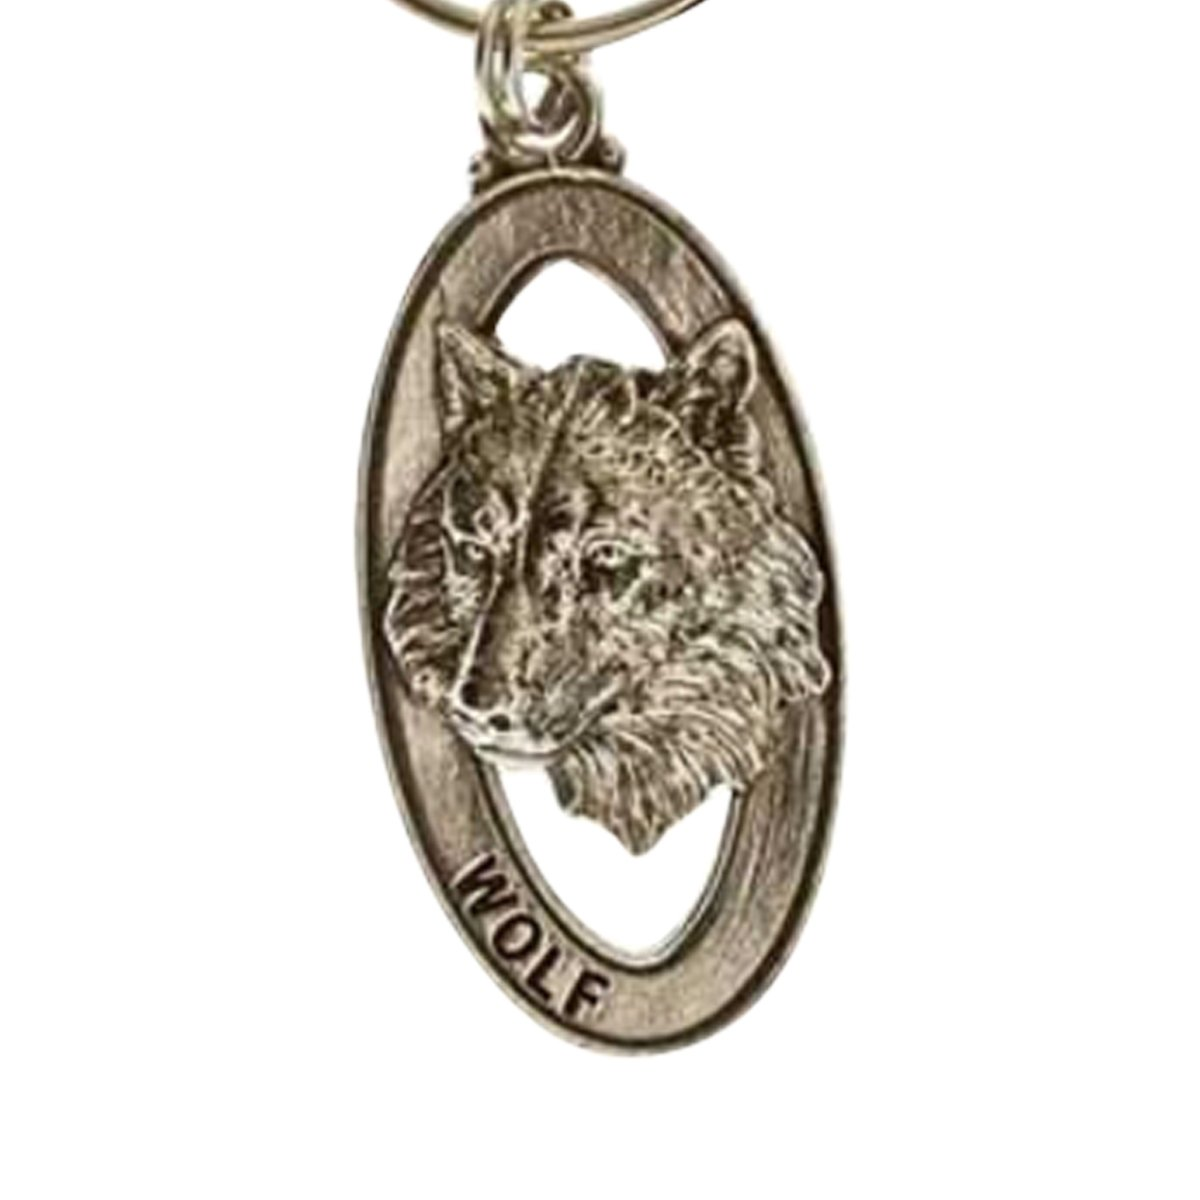 Creative Pewter Designs, Pewter Wolf Head Key Chain, Antiqued Finish, MK041 by Creative Pewter Designs (Image #1)